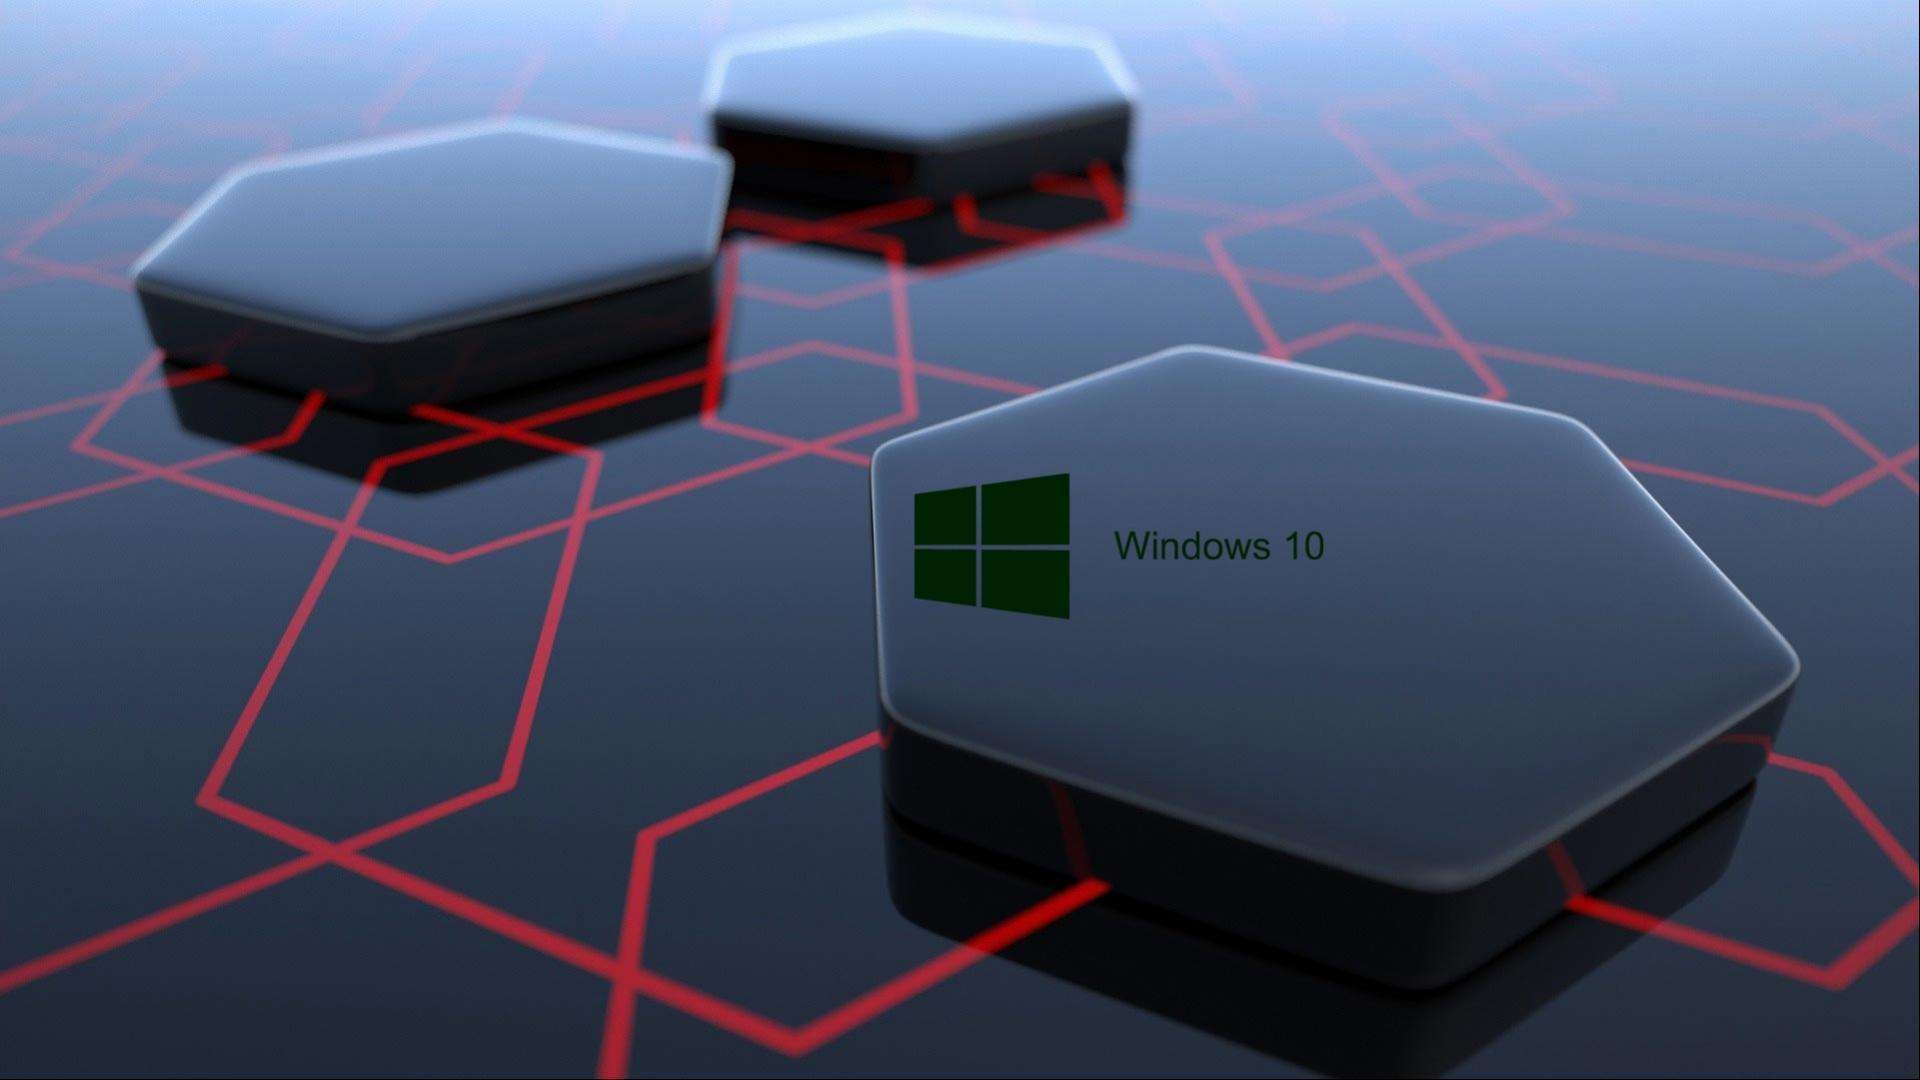 1920x1080 Windows 10 Wallpaper HD 3D for Desktop Black